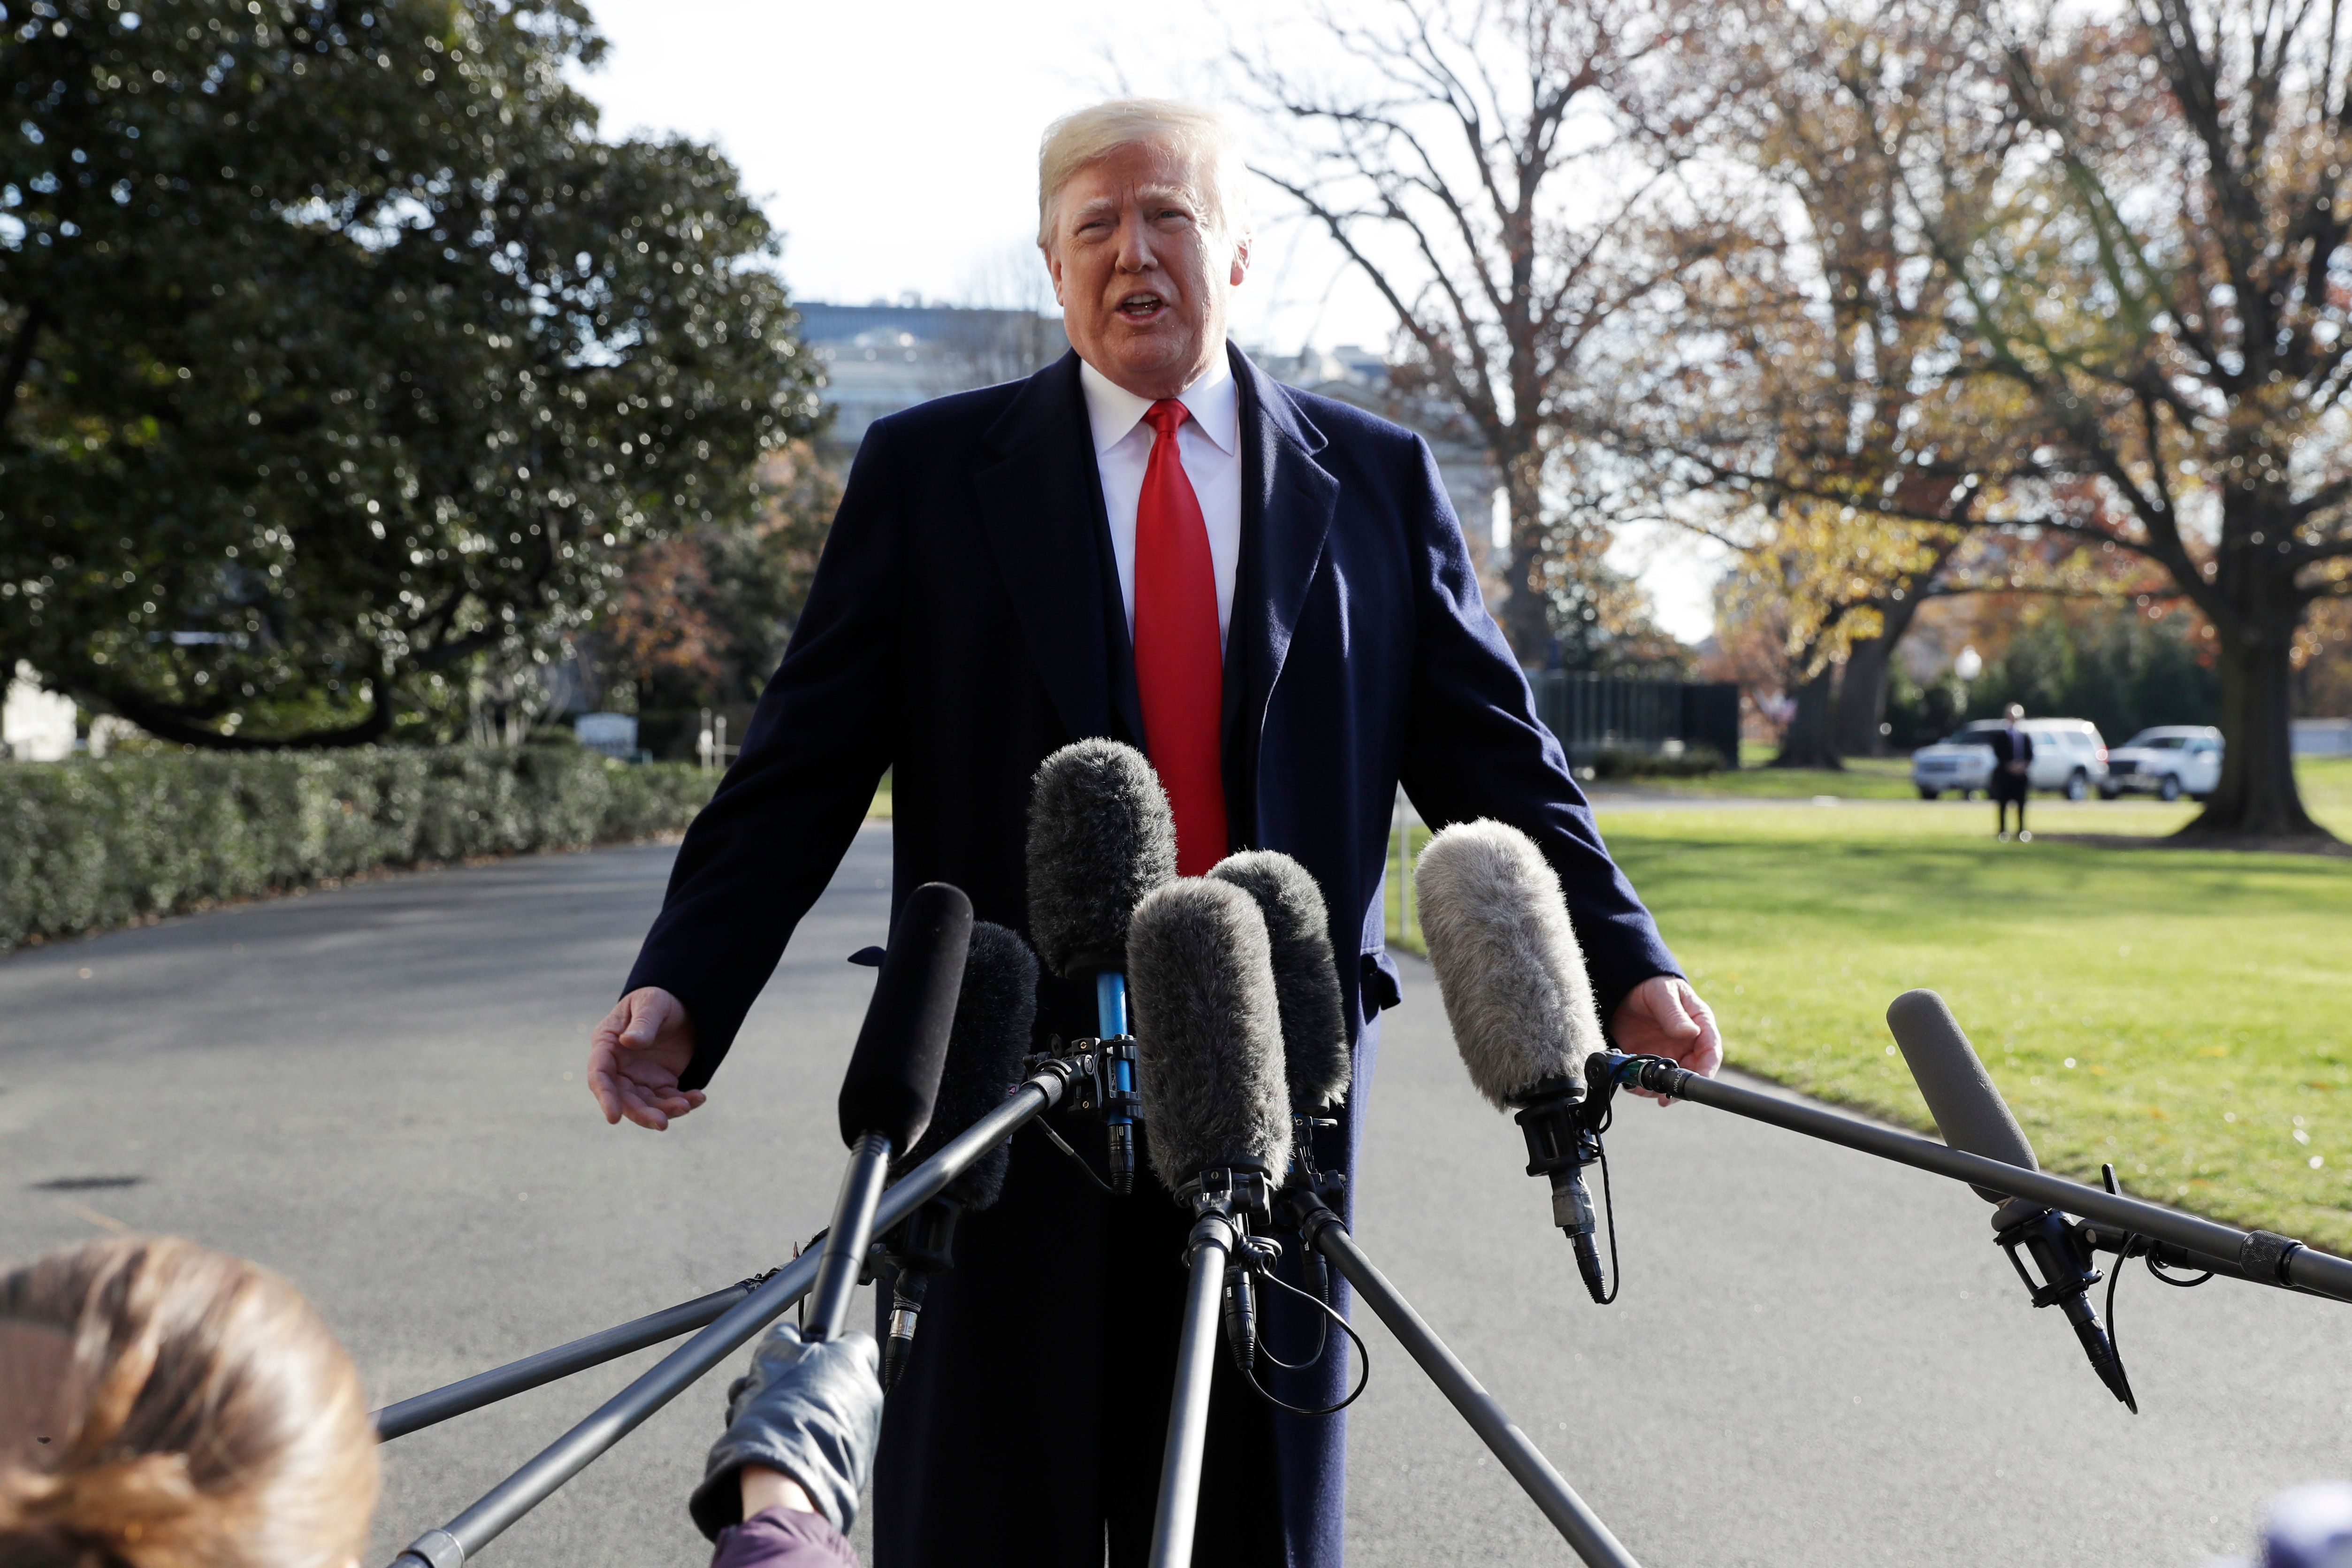 President Donald Trump announced Friday that he would nominate William Barr to be attorney general.